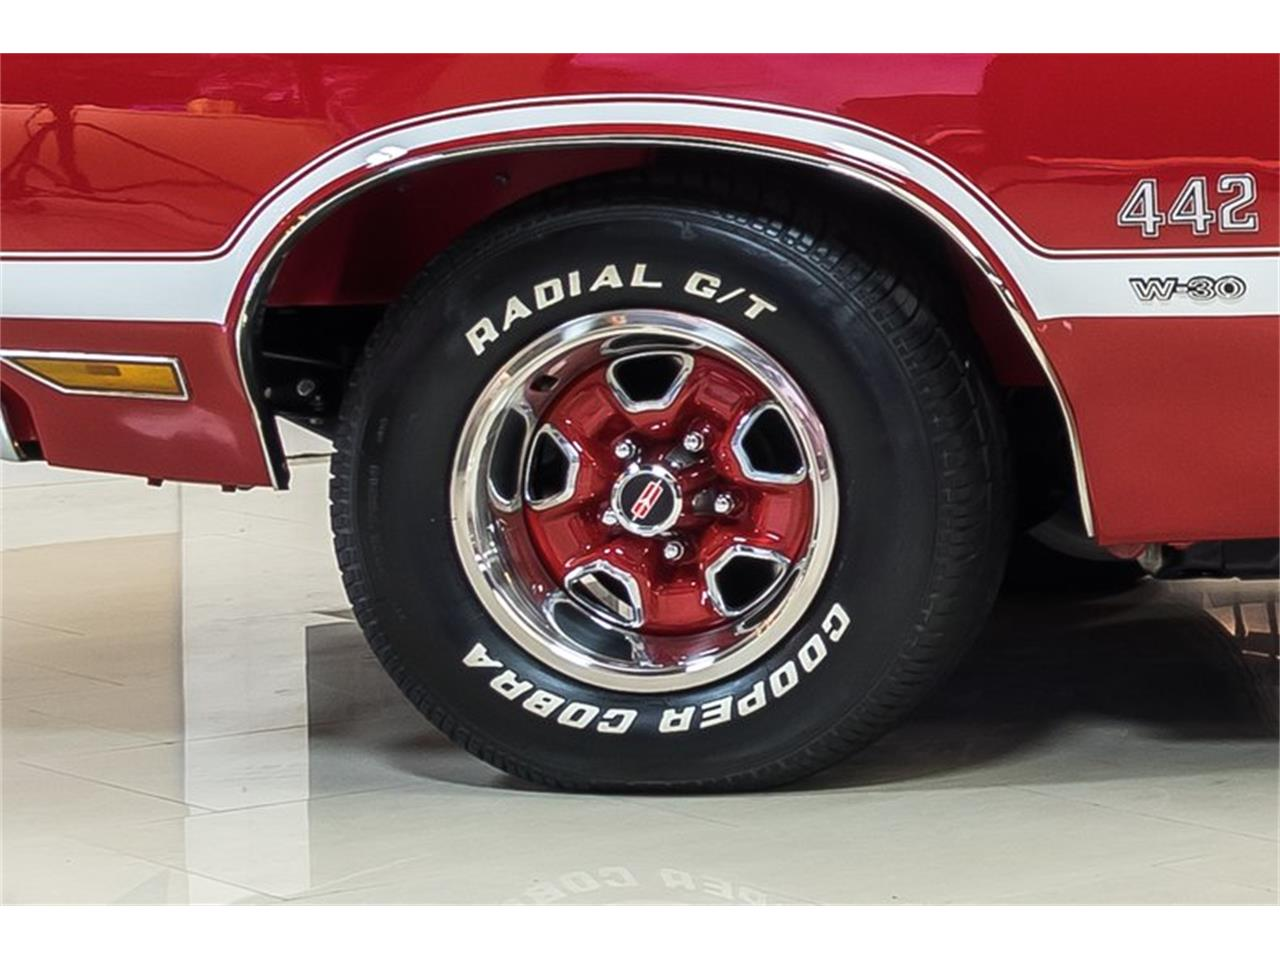 Large Picture of 1970 Oldsmobile 442 located in Michigan - $89,900.00 Offered by Vanguard Motor Sales - PS50